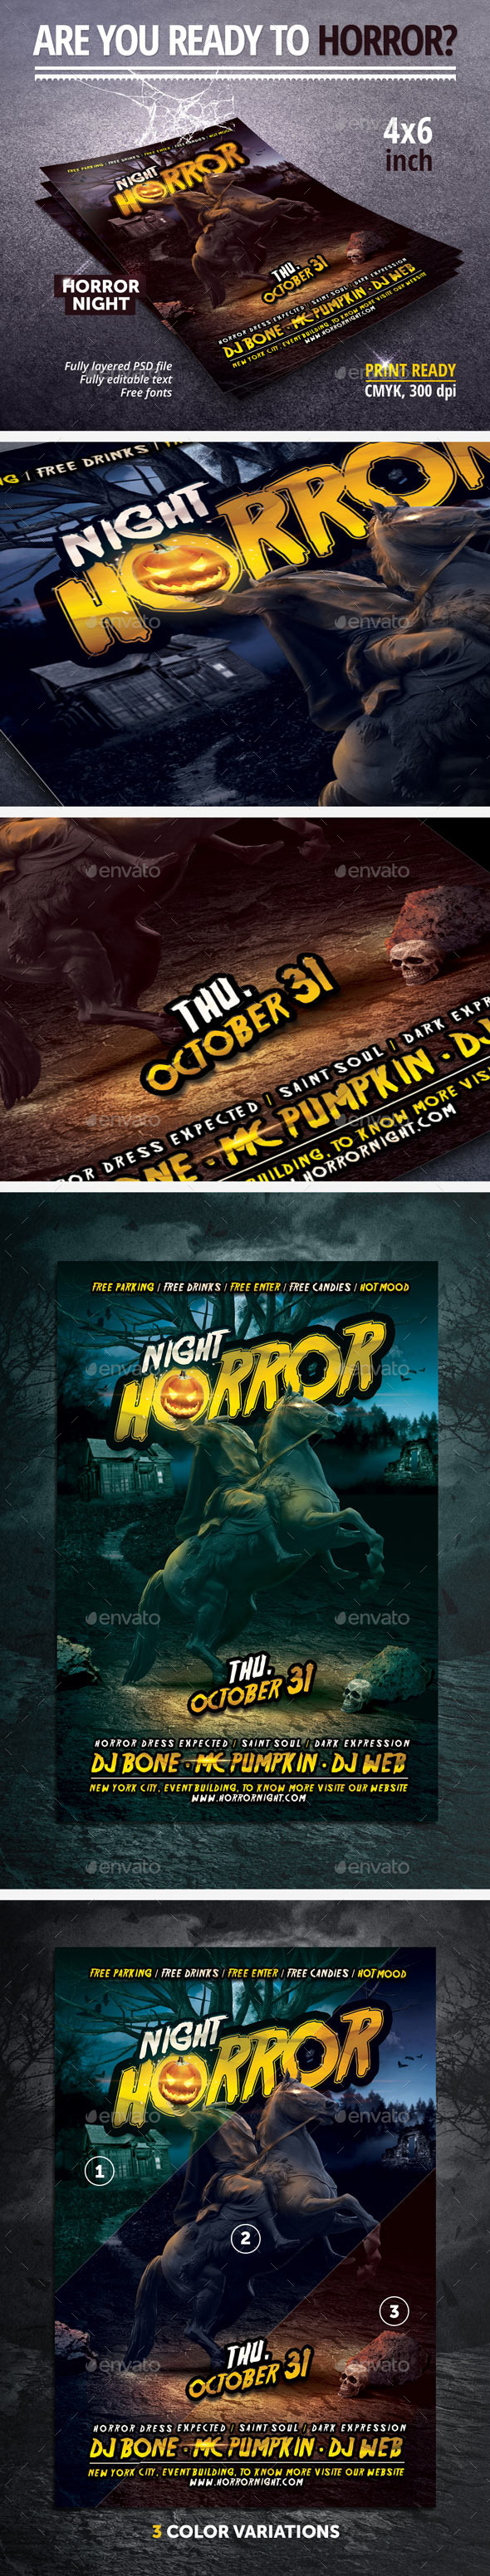 GraphicRiver Horror Night Halloween Party Flyer 9111142